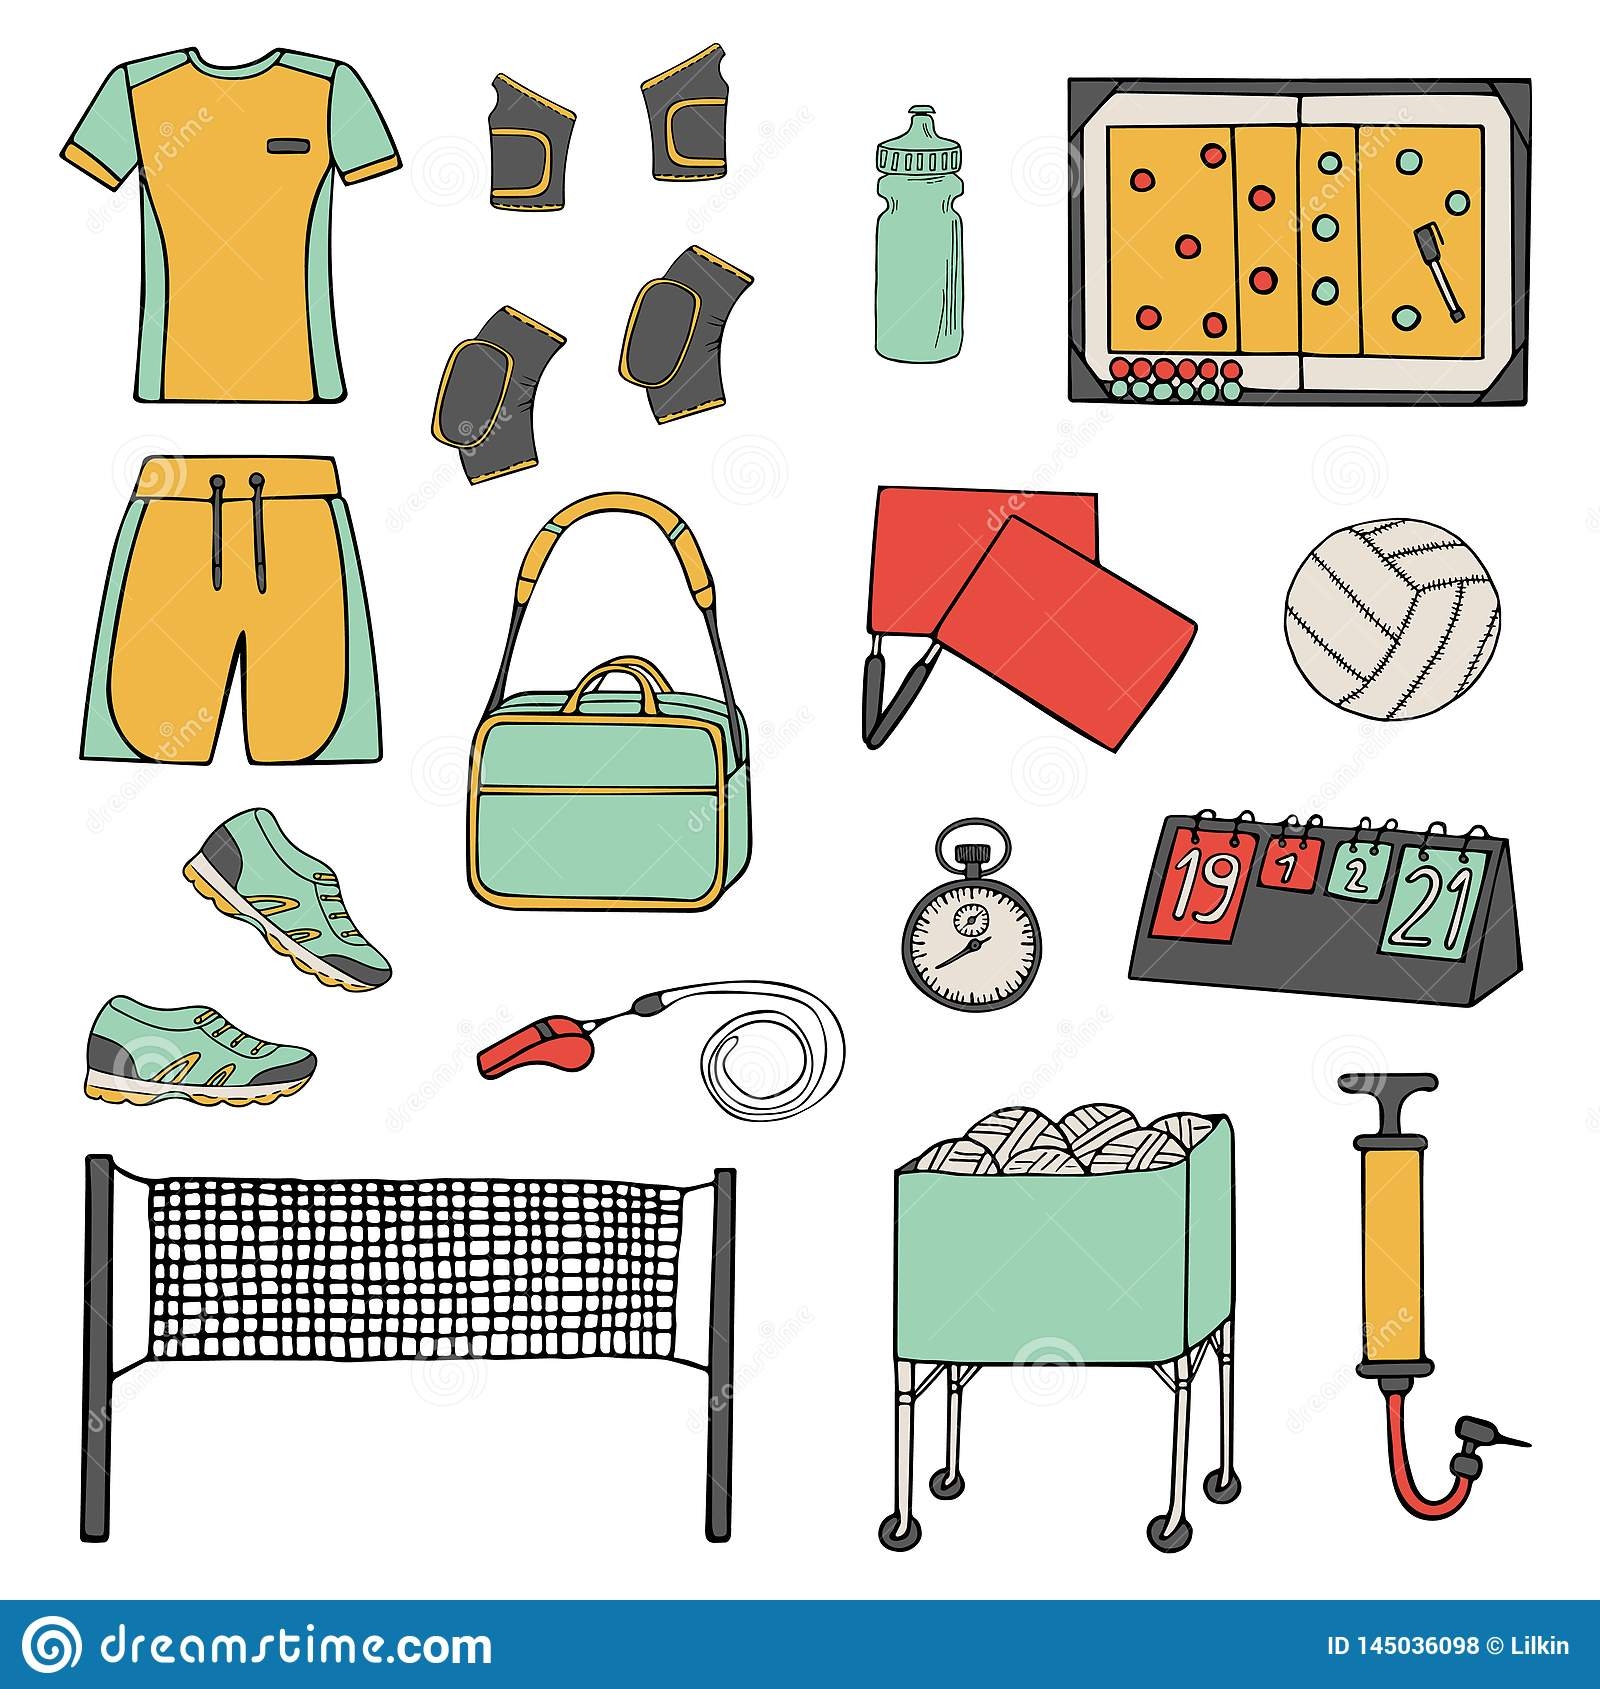 Doodle Volleyball Stock Illustrations 867 Doodle Volleyball Stock Illustrations Vectors Clipart Dreamstime